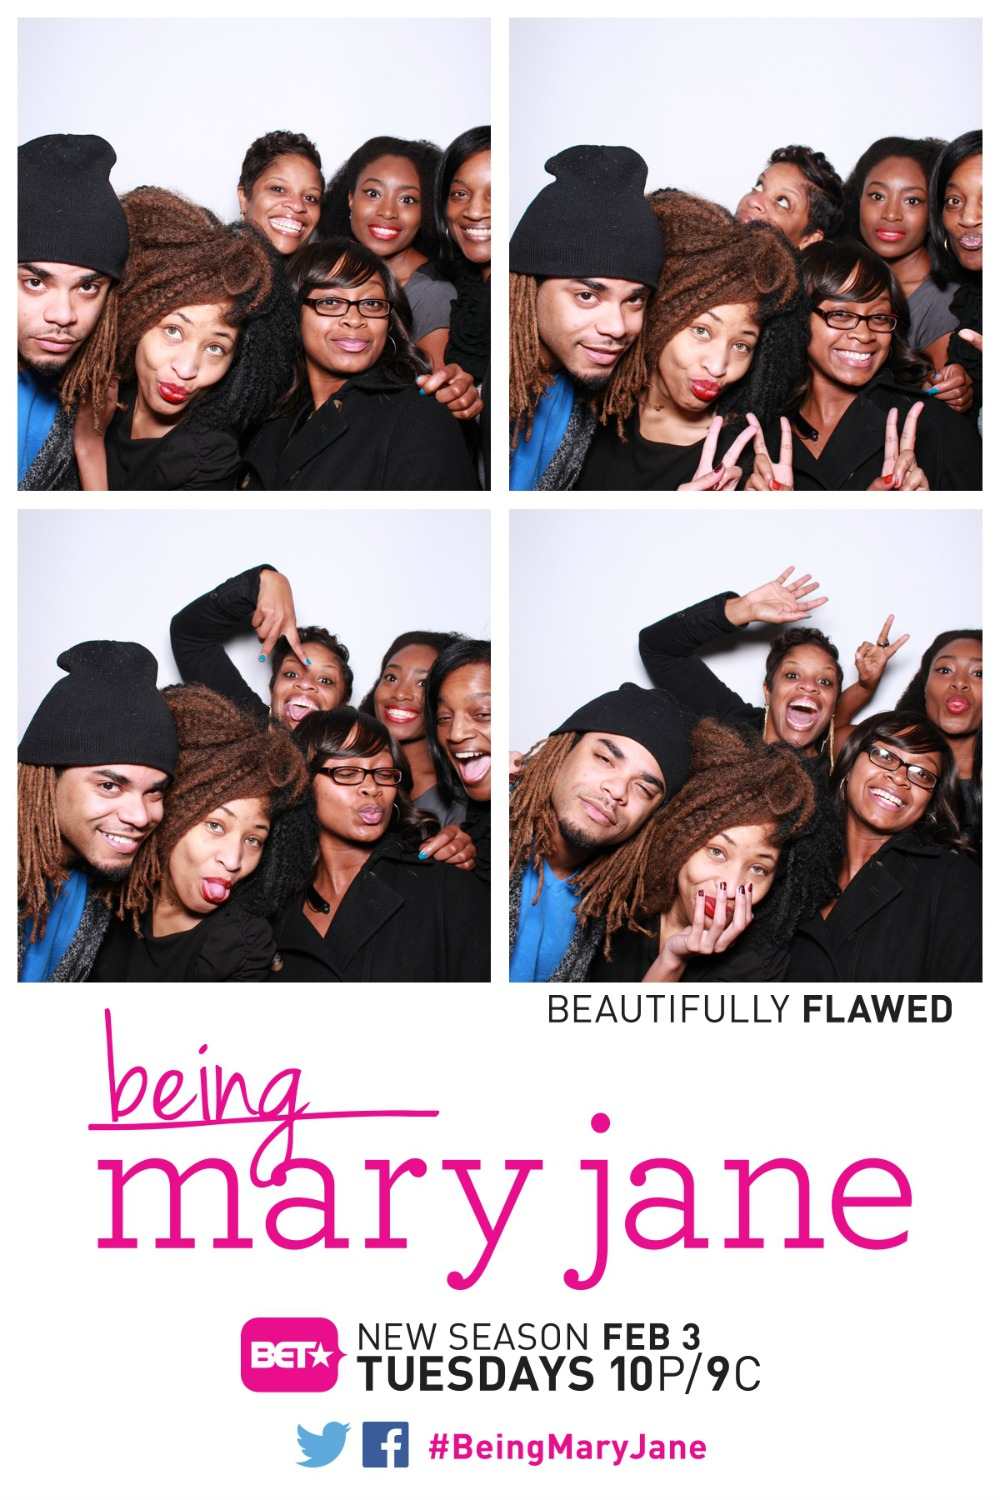 BEING-MARY-JANE-BET-SEASON-2-KIWI-THE-BEAUTY-BOOTH4